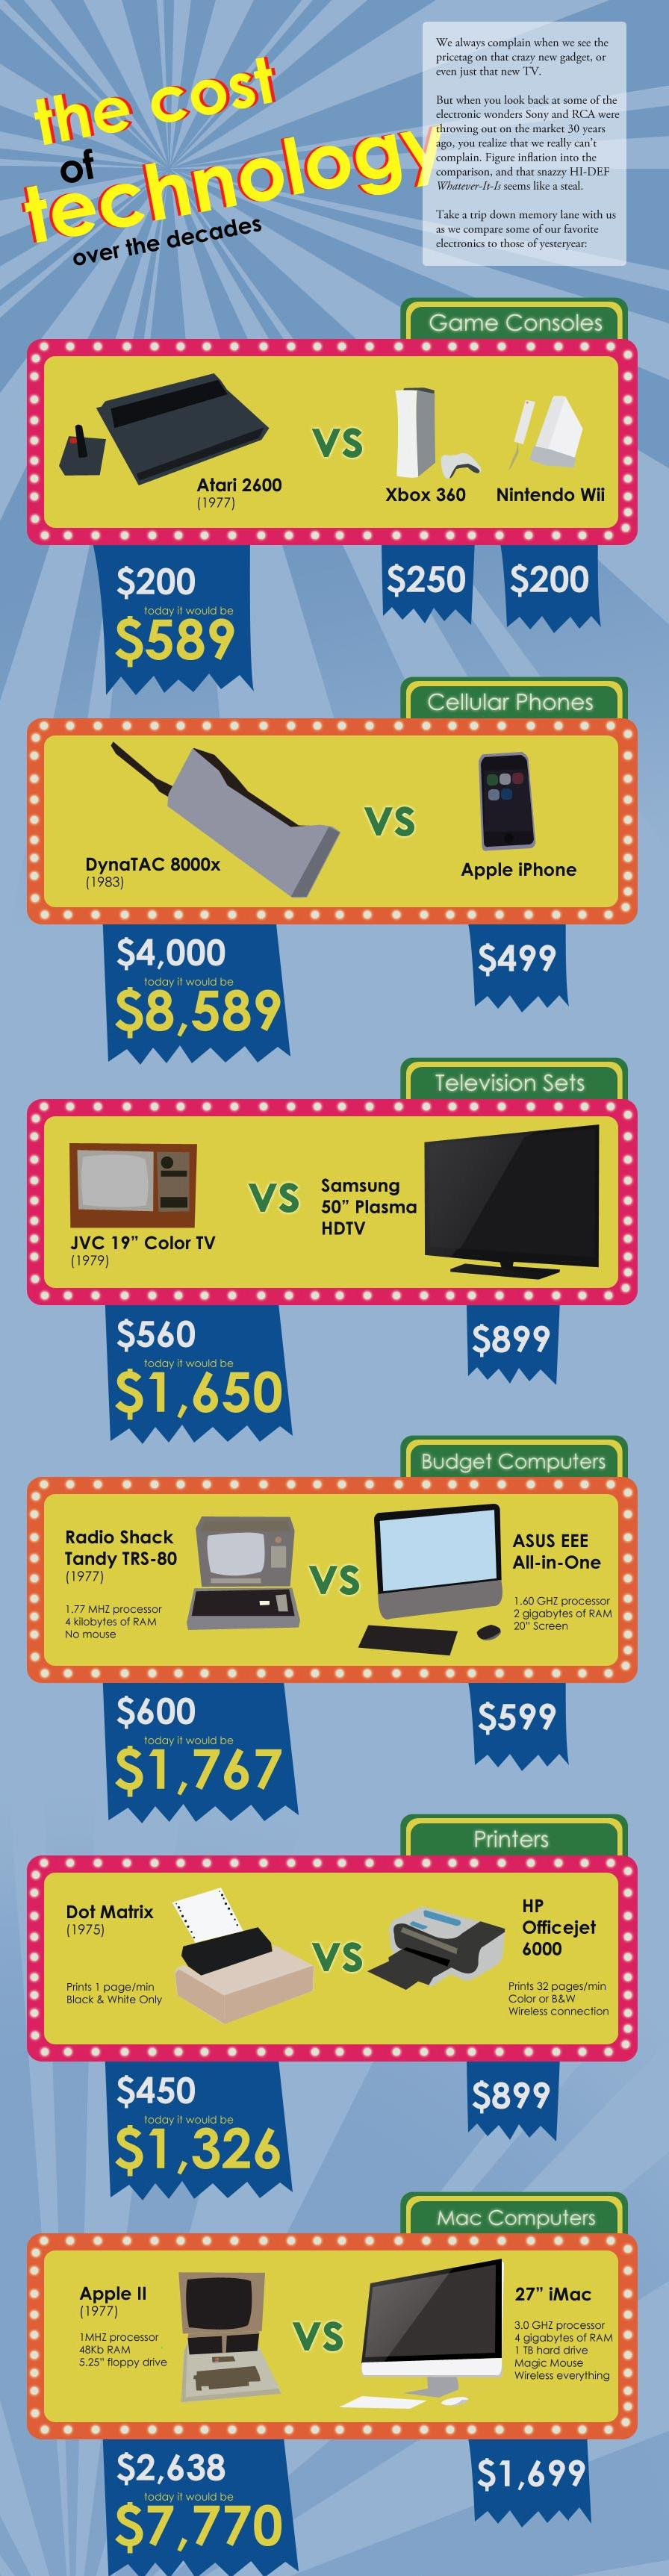 cost-of-technology